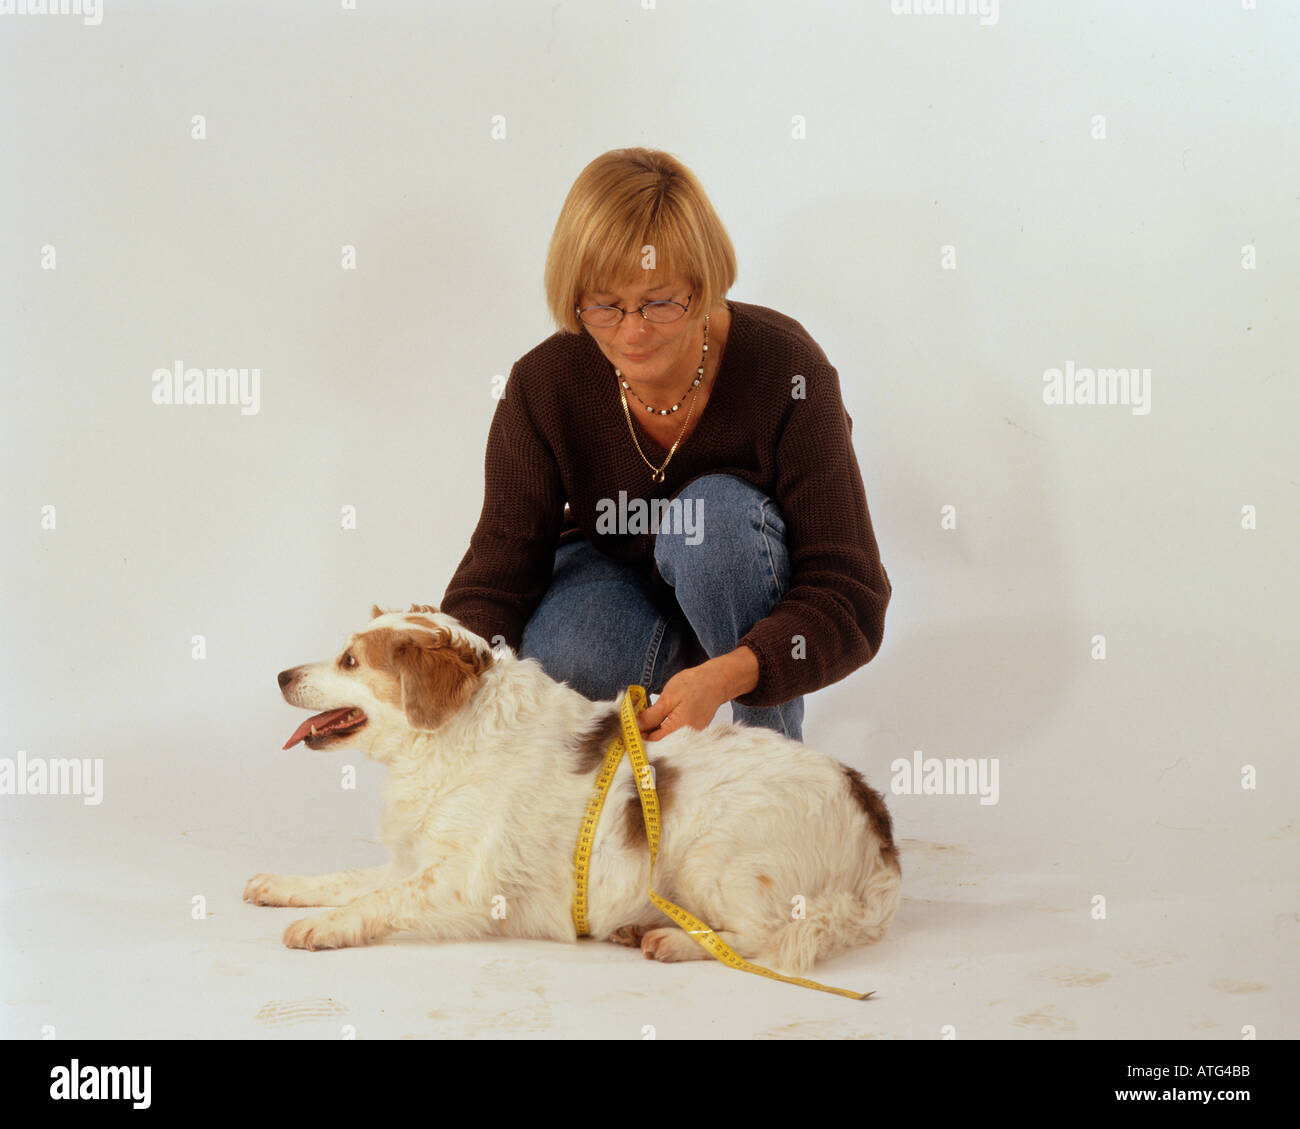 woman and dog: abdominal measurement - Stock Image